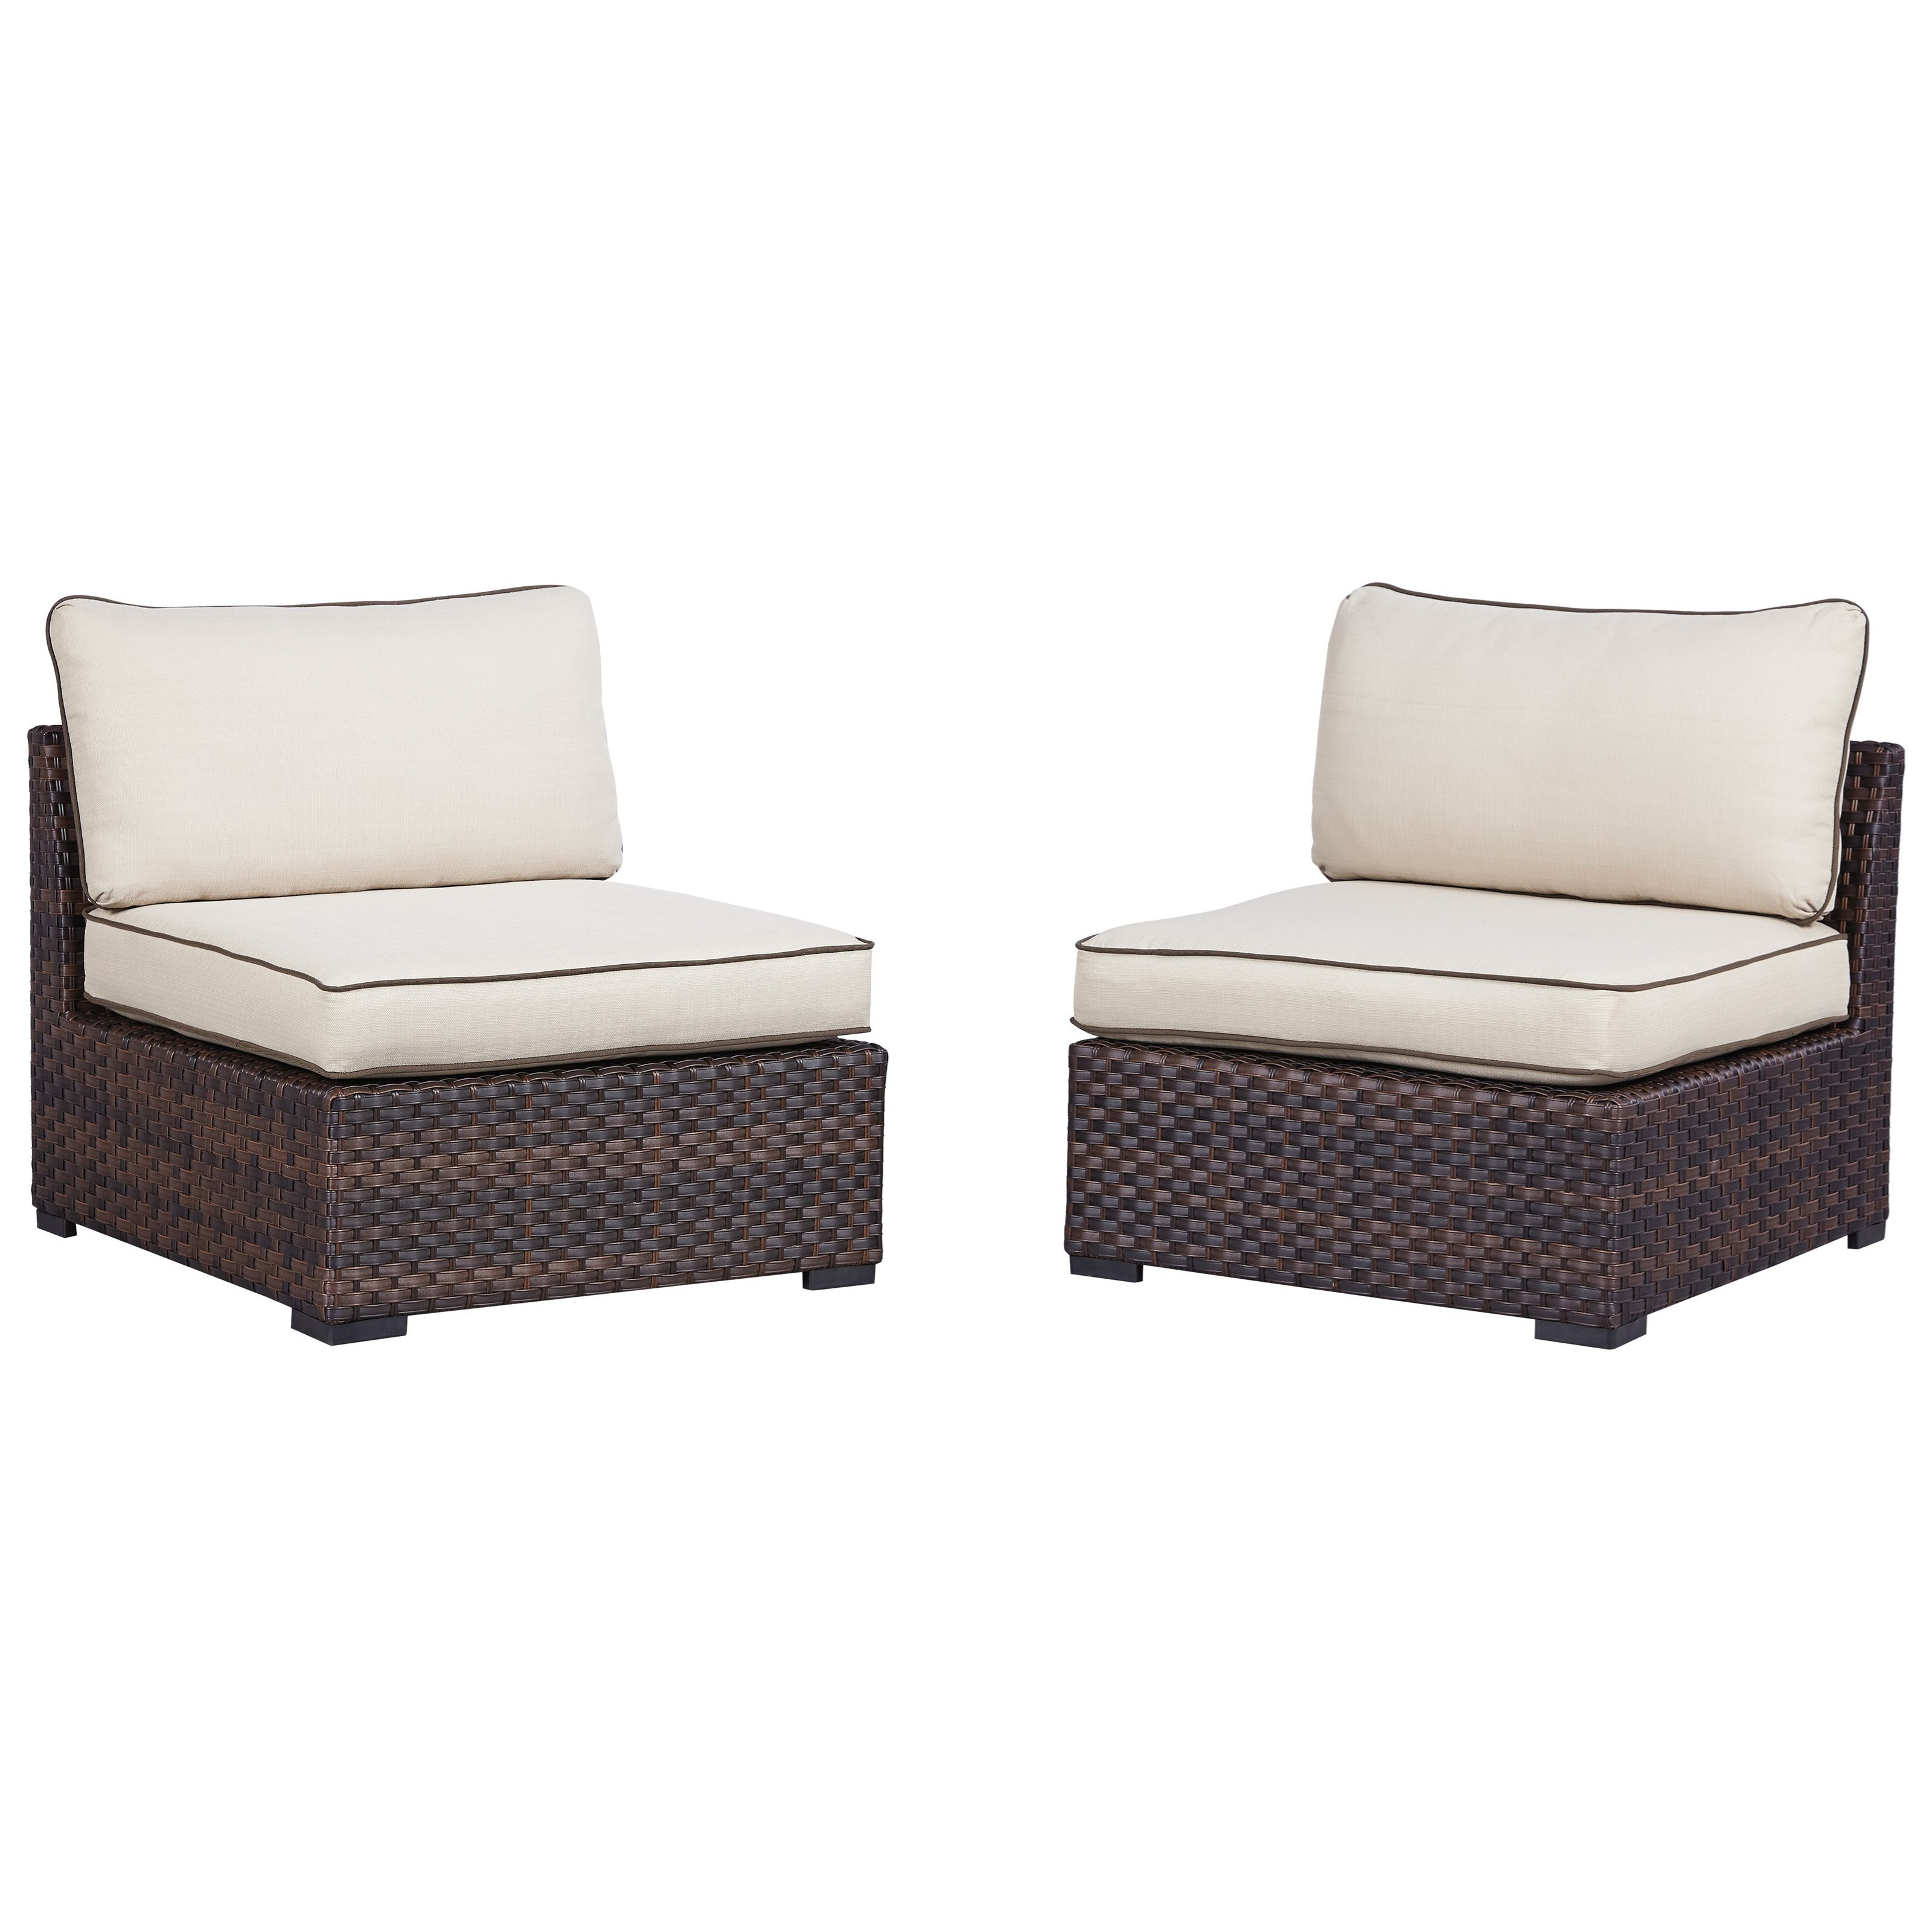 Ashley Signature Design Renway Set of 2 Armless Chairs w Cushion Dunk &amp